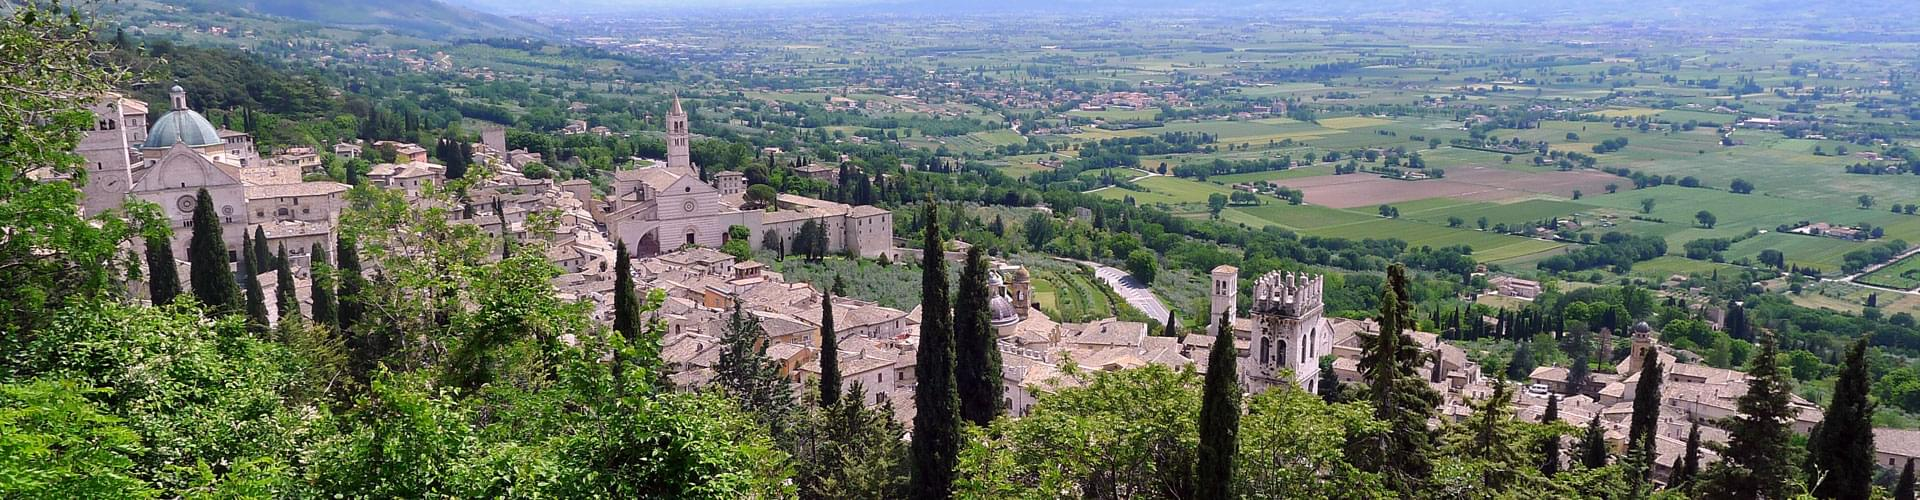 Assisi, assisi italy, assisi umbria, tourist information assisi, visiting assisi, facts about assisi, information on assisi